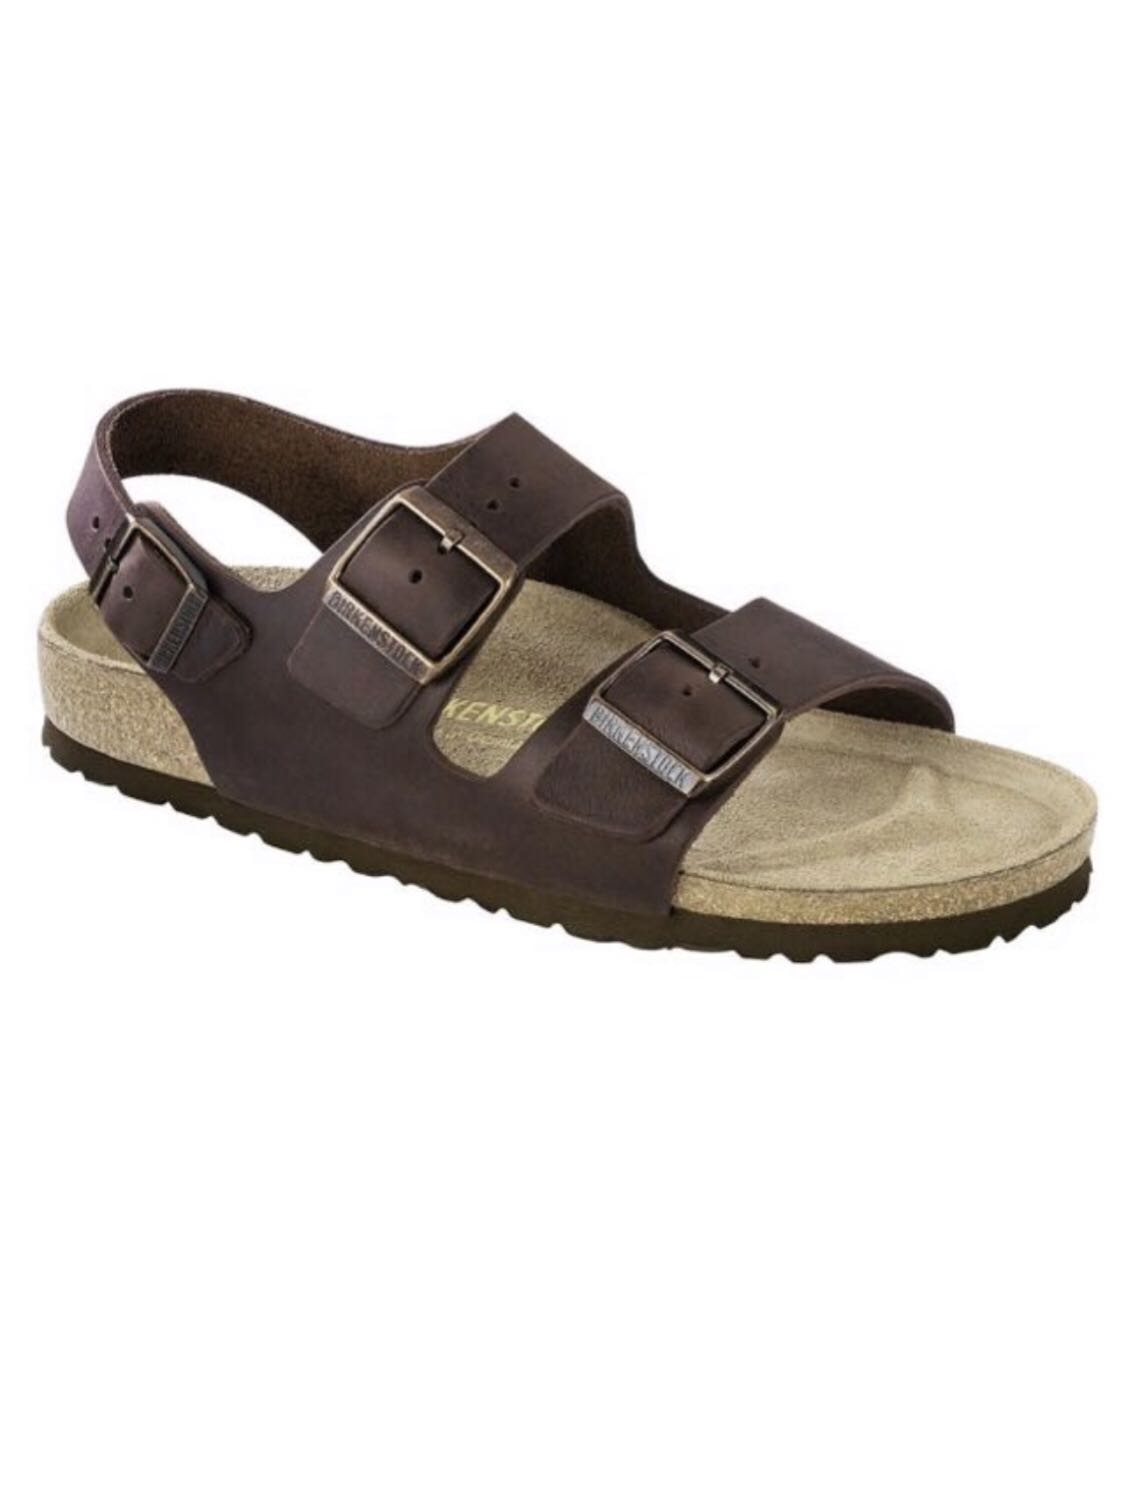 269a7d44e2c3 Birkenstock Milano Oiled Leather Habana 034871